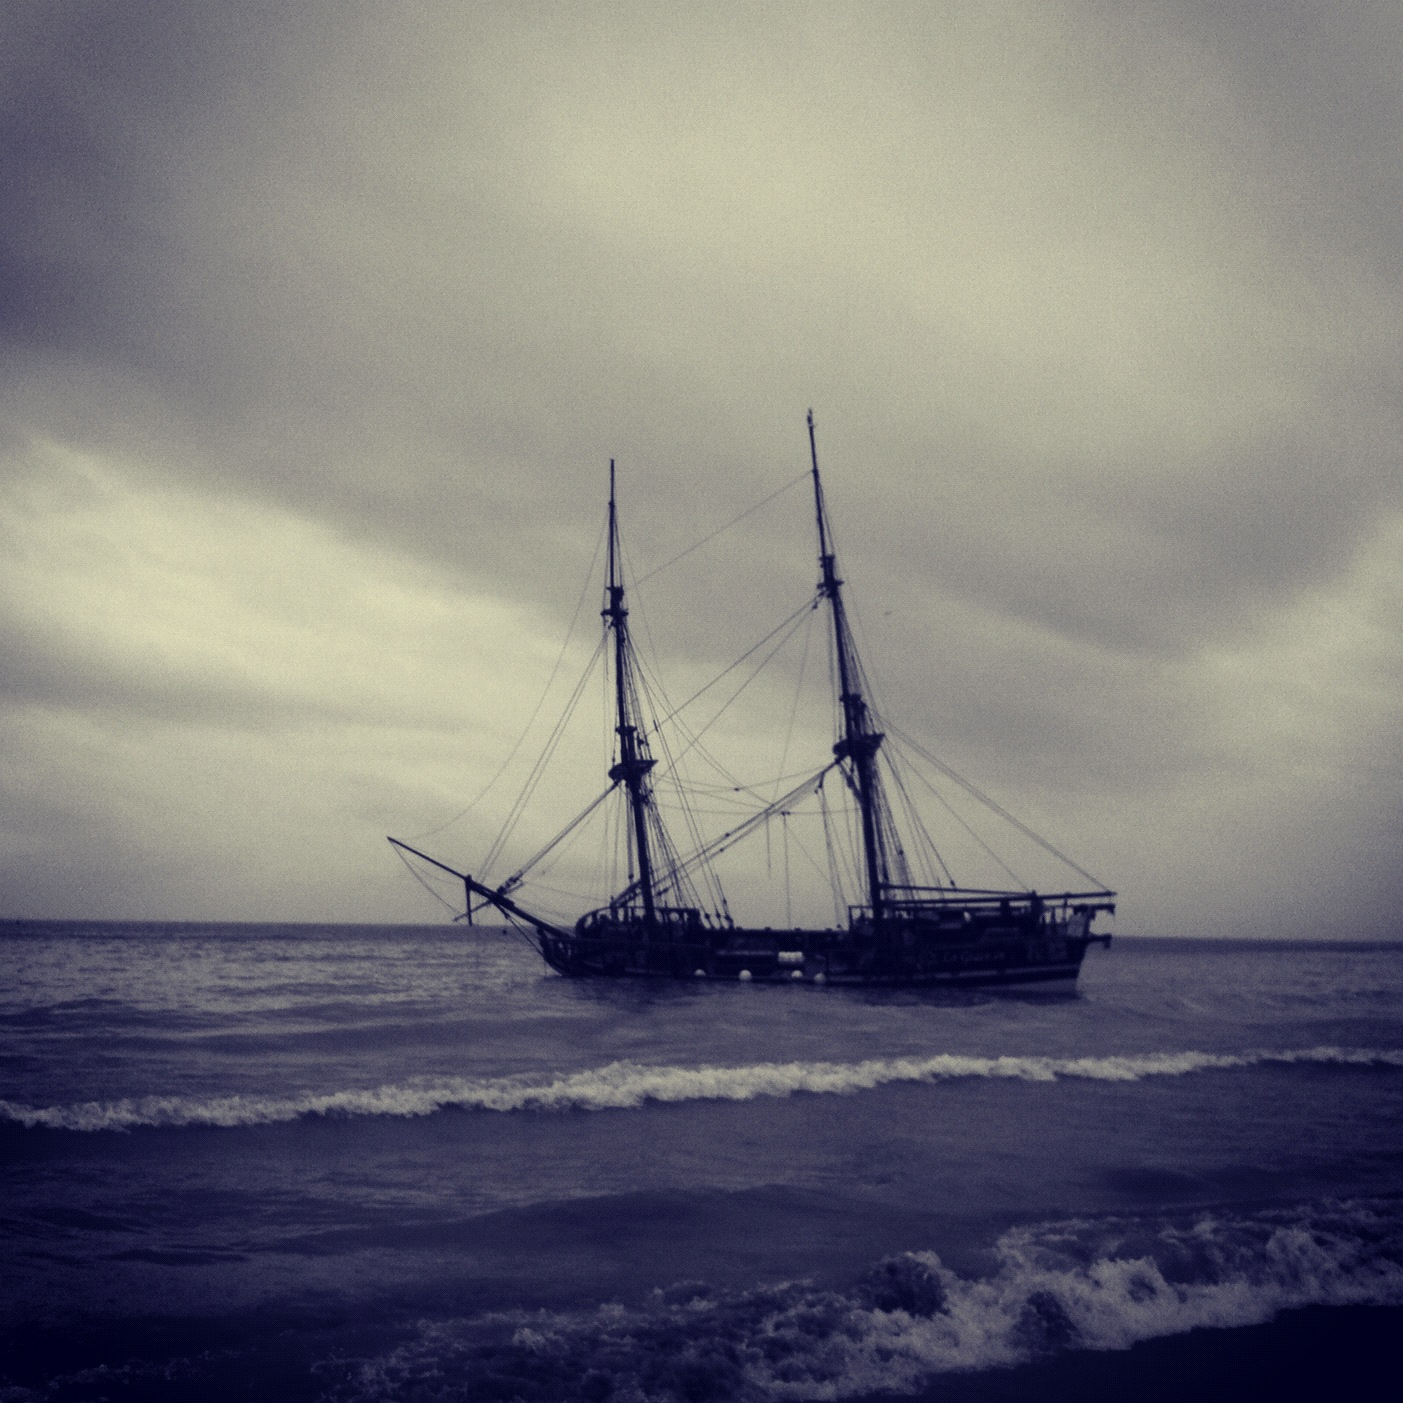 La Grace Replica Brig, Grounded off Marbella Andrew Forbes